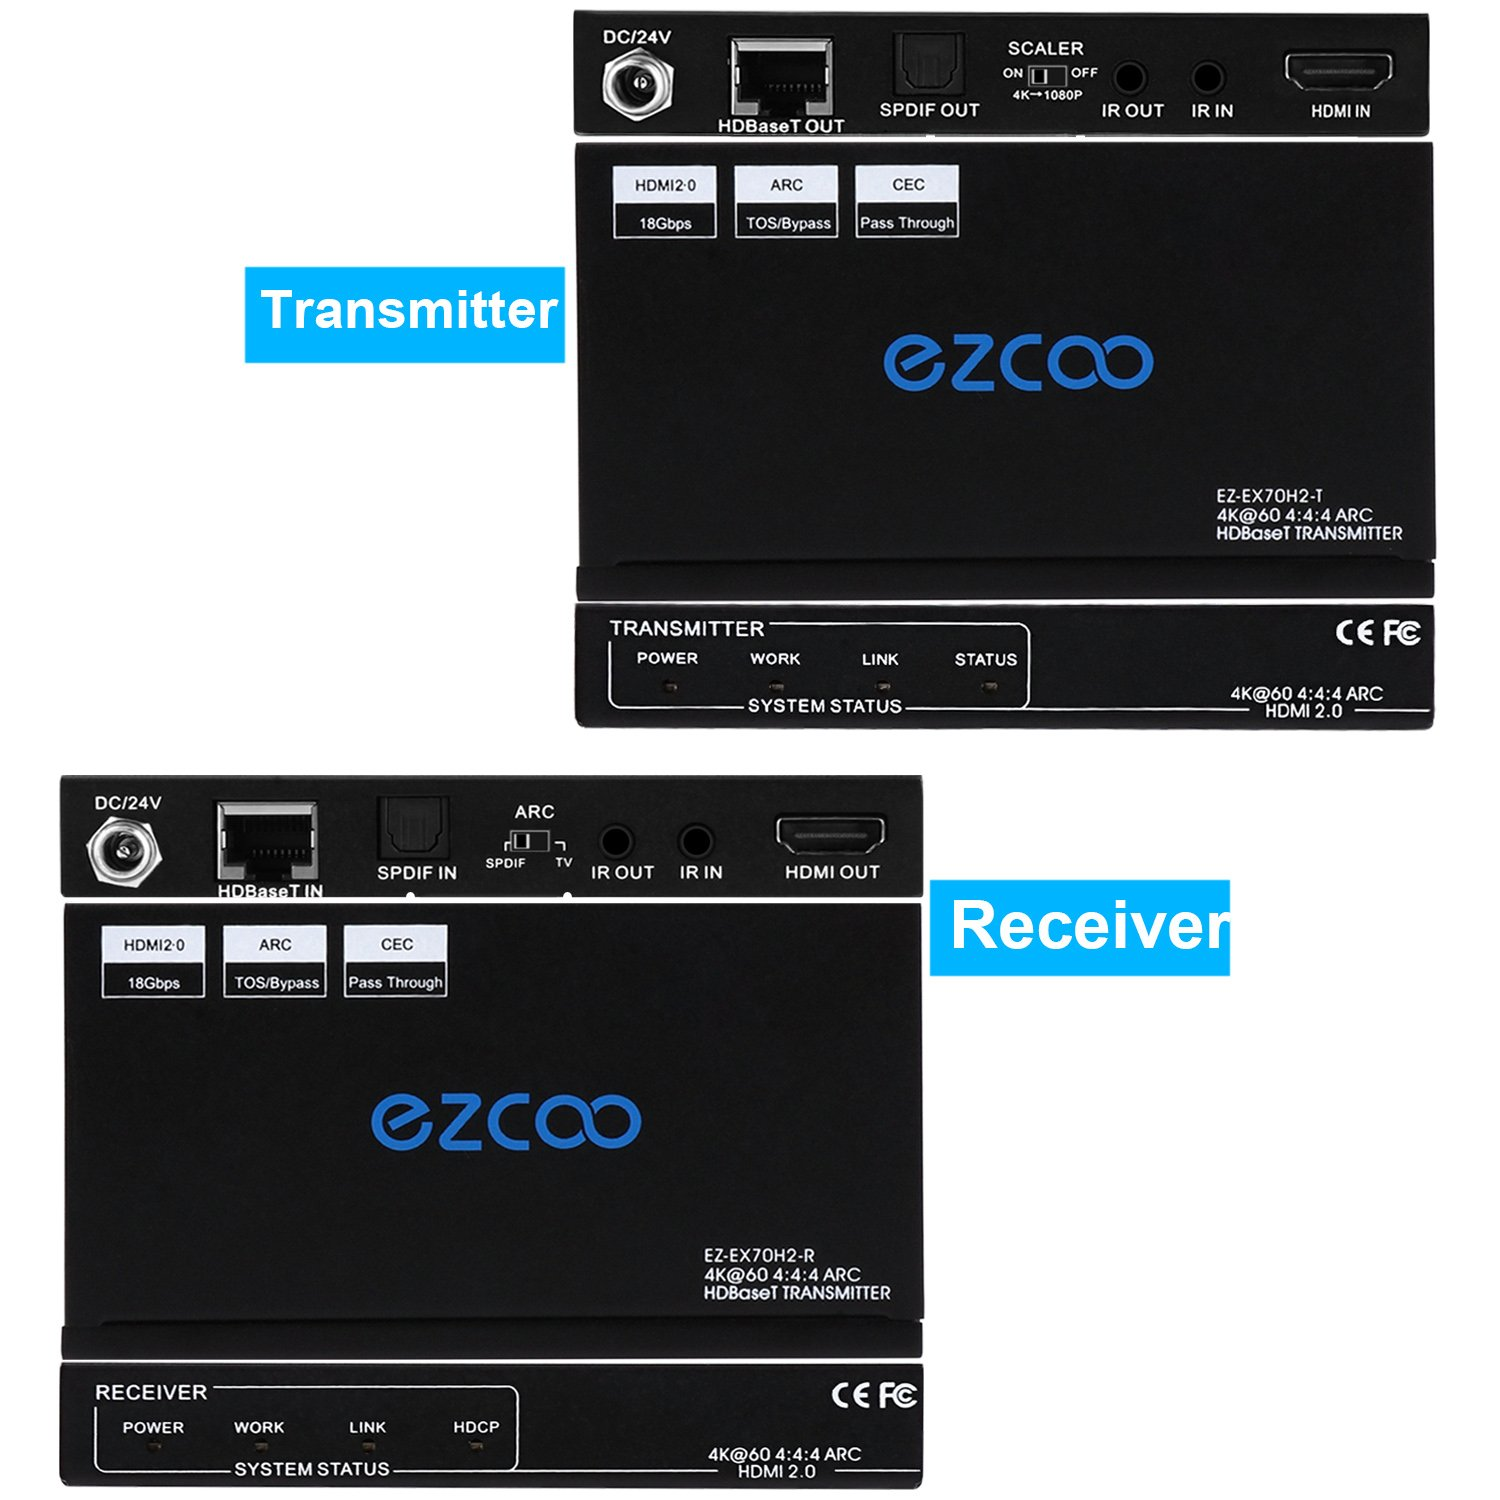 EZCOO 4K HDMI 2.0 Extender ARC HDR Scaler,HDBaseT Extender,Uncompressed 4K 60Hz 4:4:4 18Gbps HDCP 2.2 SPDIF, 4K/ 1080P Scaler Out, 230ft 1080P, 130ft 4K via Cat5e/6a, Bi-directional PoE+IR, CEC, DTS:X by EZCOO (Image #3)